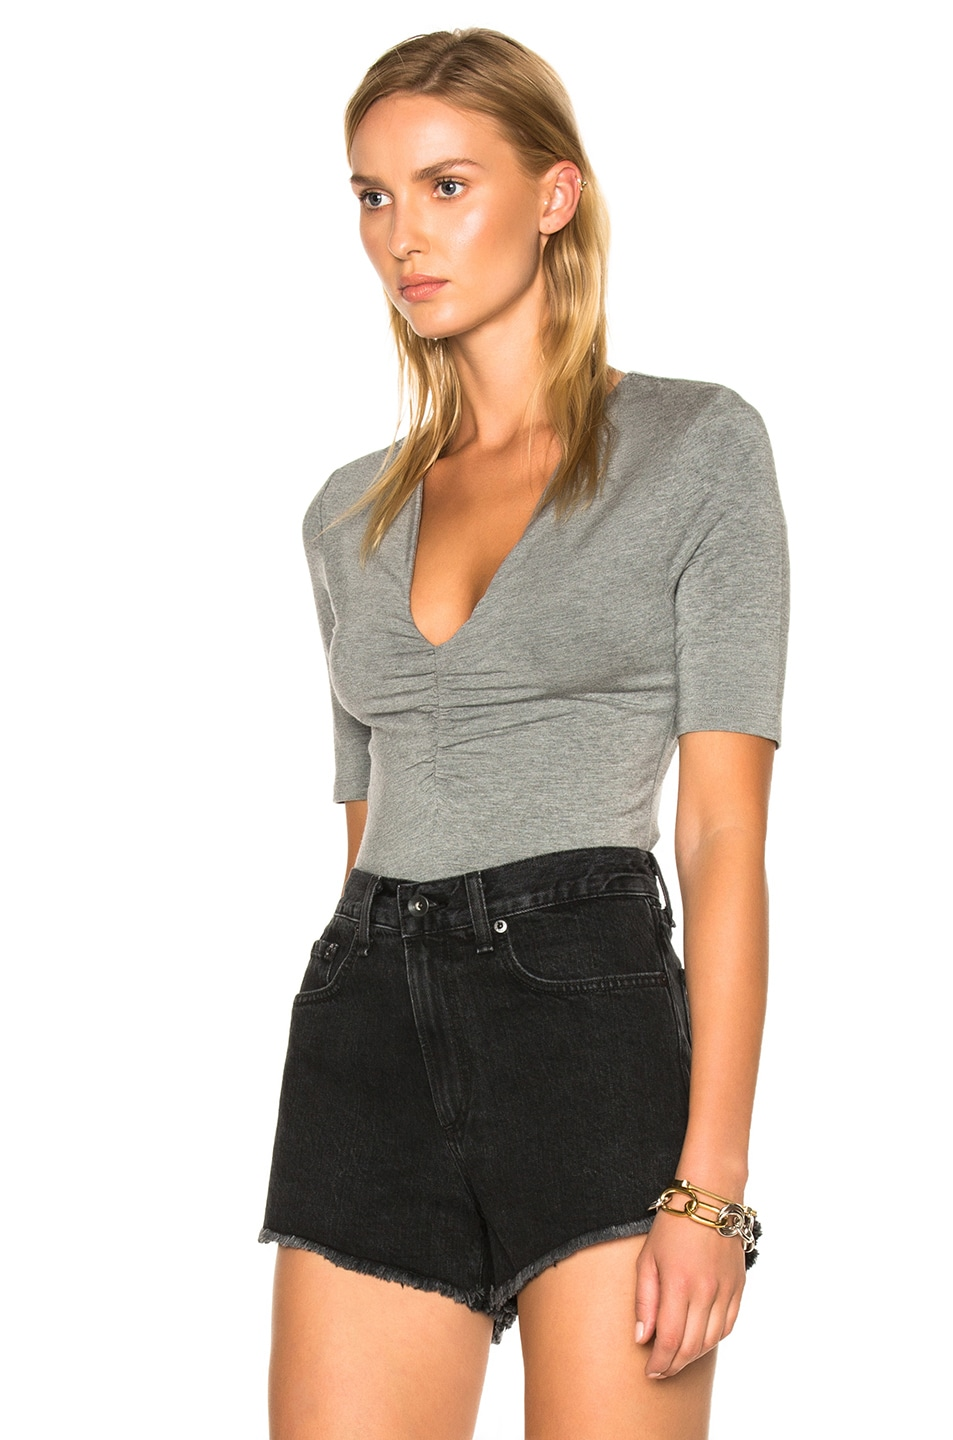 Image 2 of T by Alexander Wang Modal Spandex Shirred Front Short Sleeve Top in Heather Gray